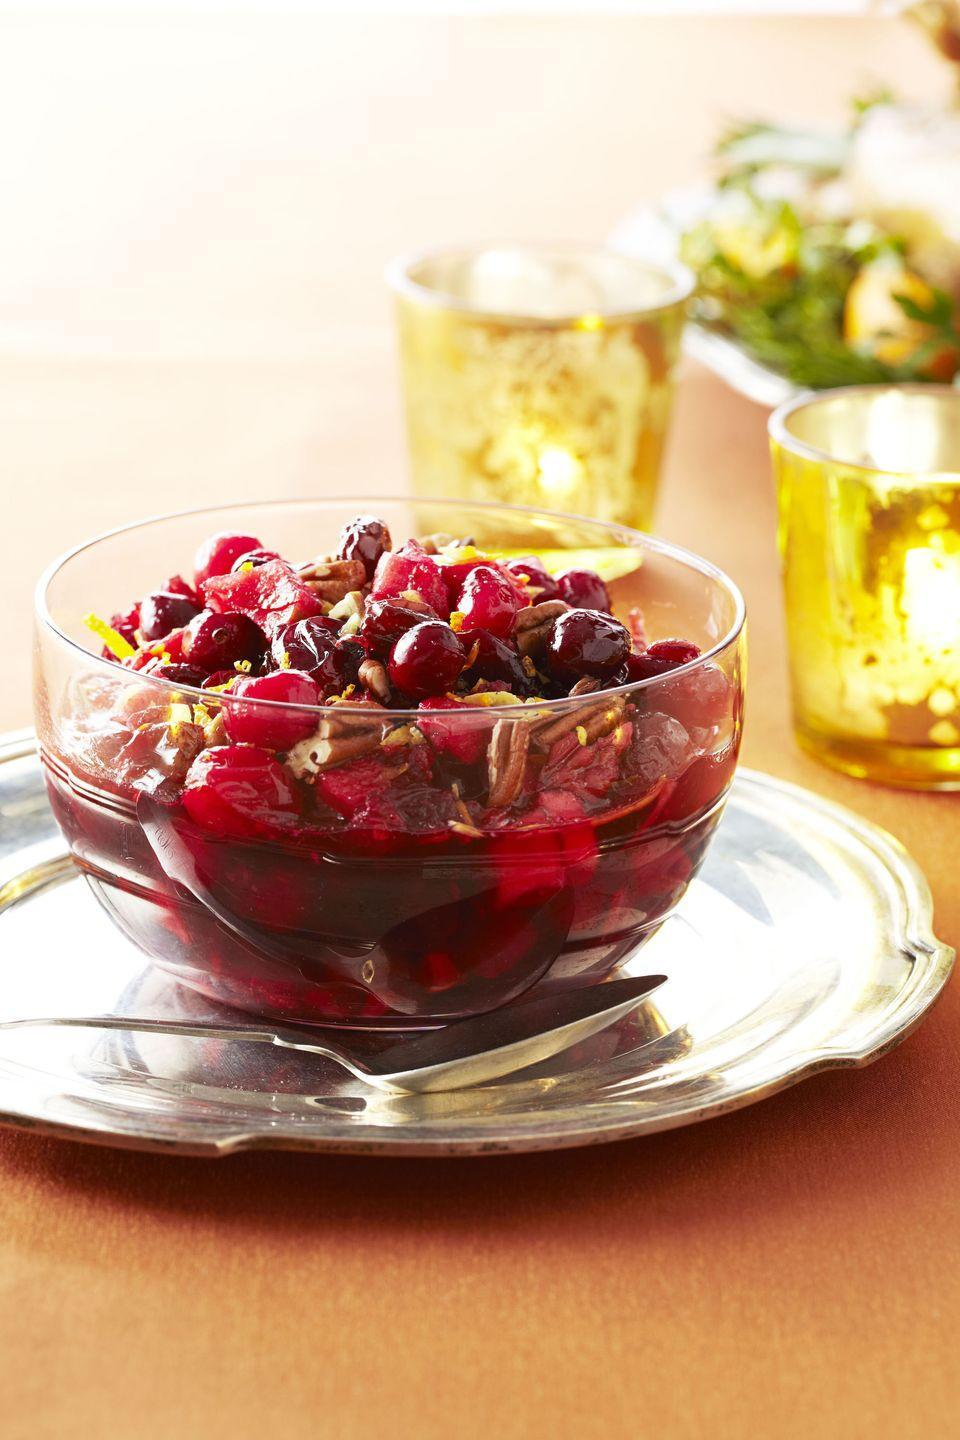 "<p>It's time to skip the canned cranberry sauce, people. This sweet and tangy side gets crunch from walnuts and tang from lemon and orange zest.</p><p><em><a href=""https://www.goodhousekeeping.com/food-recipes/a11228/cranberry-fruit-conserve-recipe-ghk111/"" rel=""nofollow noopener"" target=""_blank"" data-ylk=""slk:Get the recipe for Cranberry Fruit Conserve »"" class=""link rapid-noclick-resp"">Get the recipe for Cranberry Fruit Conserve »</a></em></p><p><strong>RELATED: </strong><a href=""https://www.goodhousekeeping.com/holidays/thanksgiving-ideas/g112/cranberry-sauce-recipes/"" rel=""nofollow noopener"" target=""_blank"" data-ylk=""slk:18 Cranberry Sauce Recipes That'll Convince You to Ditch the Can Opener"" class=""link rapid-noclick-resp"">18 Cranberry Sauce Recipes That'll Convince You to Ditch the Can Opener</a></p>"